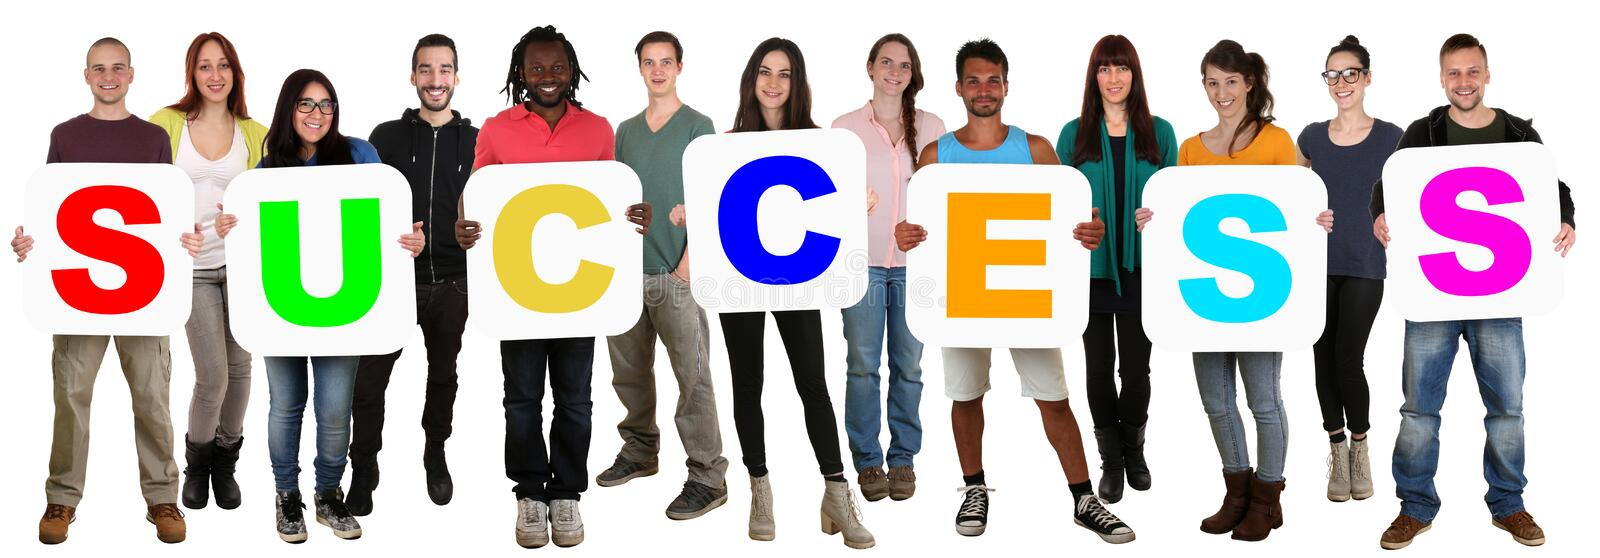 Group of young multi ethnic people holding word success royalty free stock photo